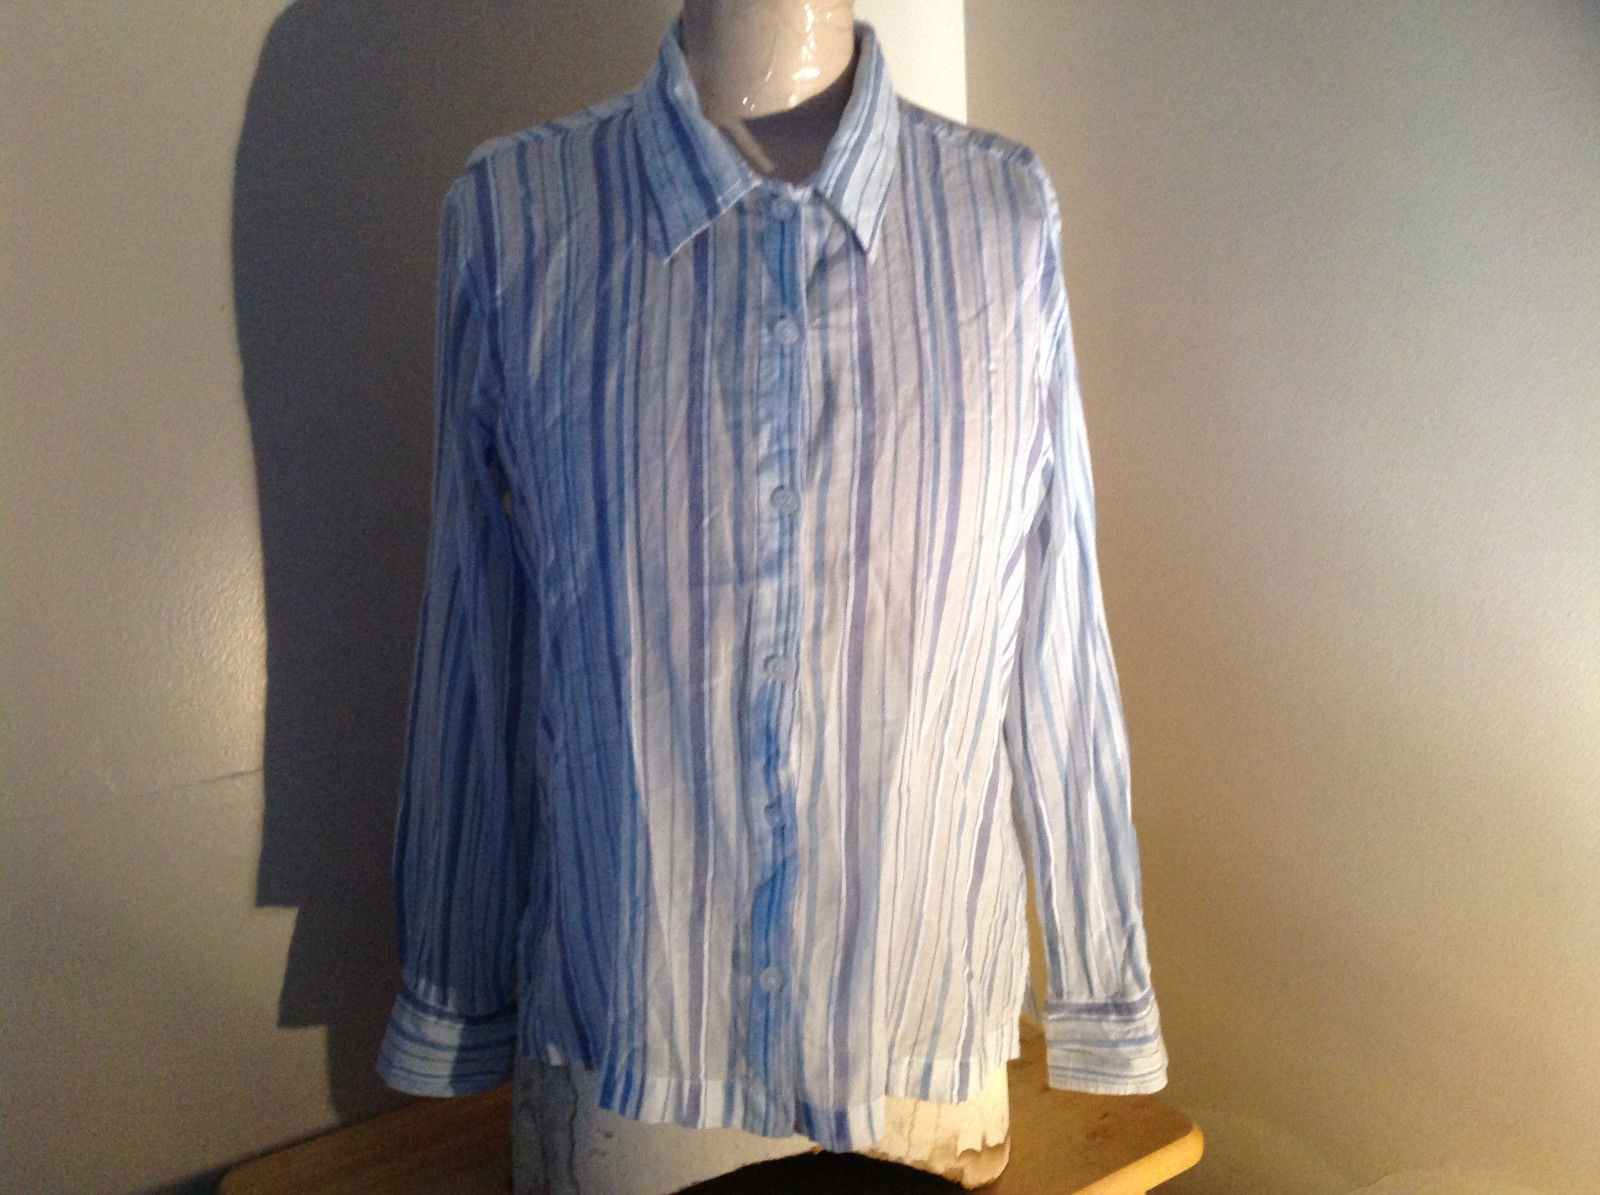 Light Blue Striped Button Up Long Sleeve Shirt by Erika Made in Nepal Size M